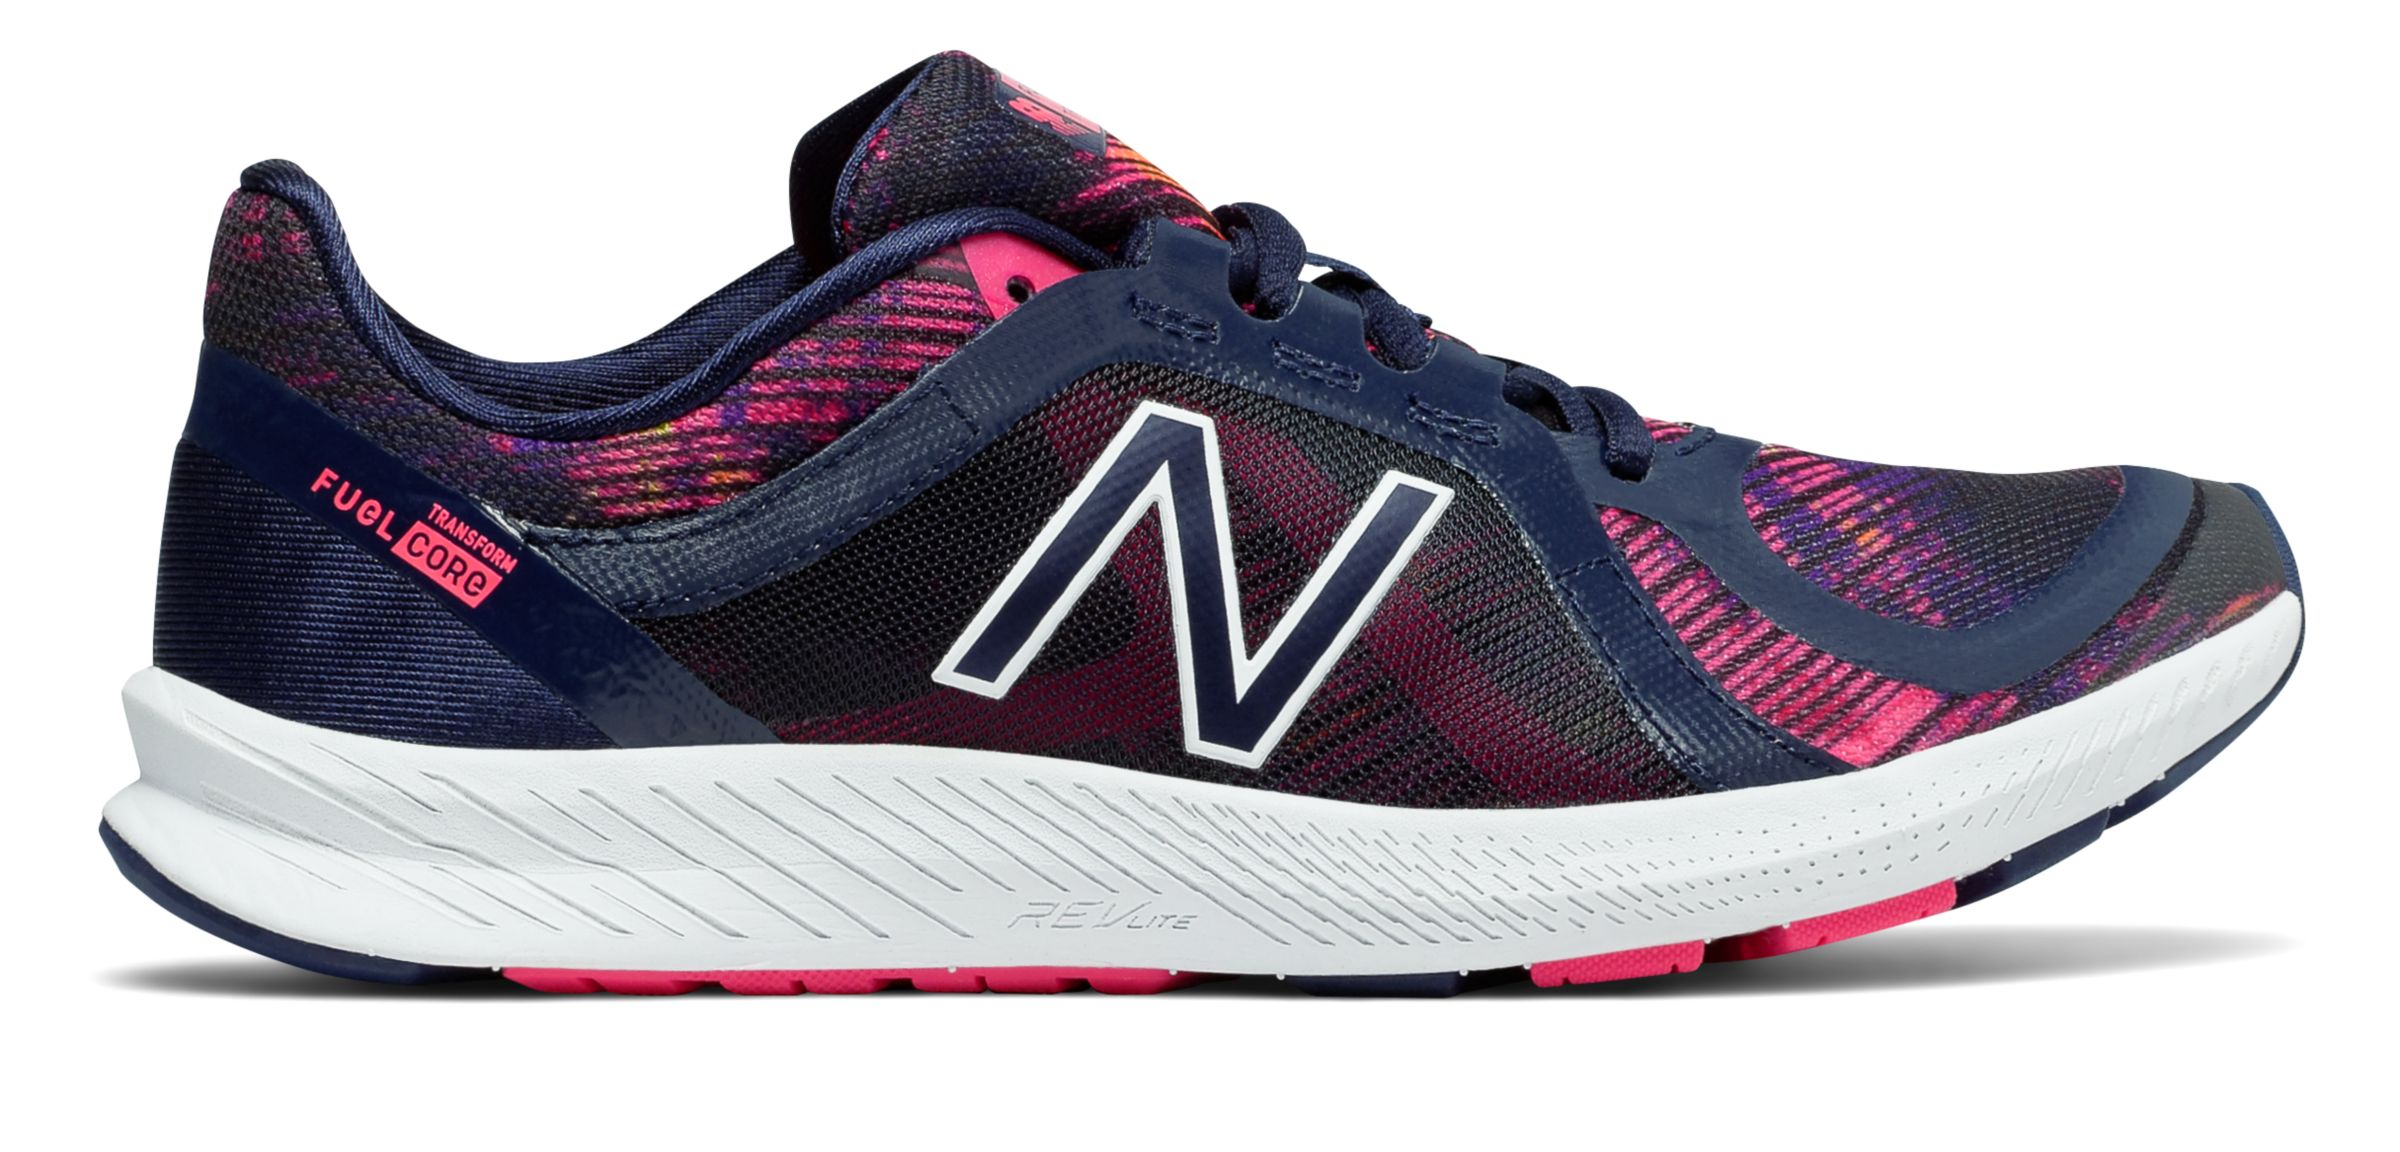 NB FuelCore Transform v2 Graphic Trainer, Pigment with Alpha Pink & Vivid Tangerine